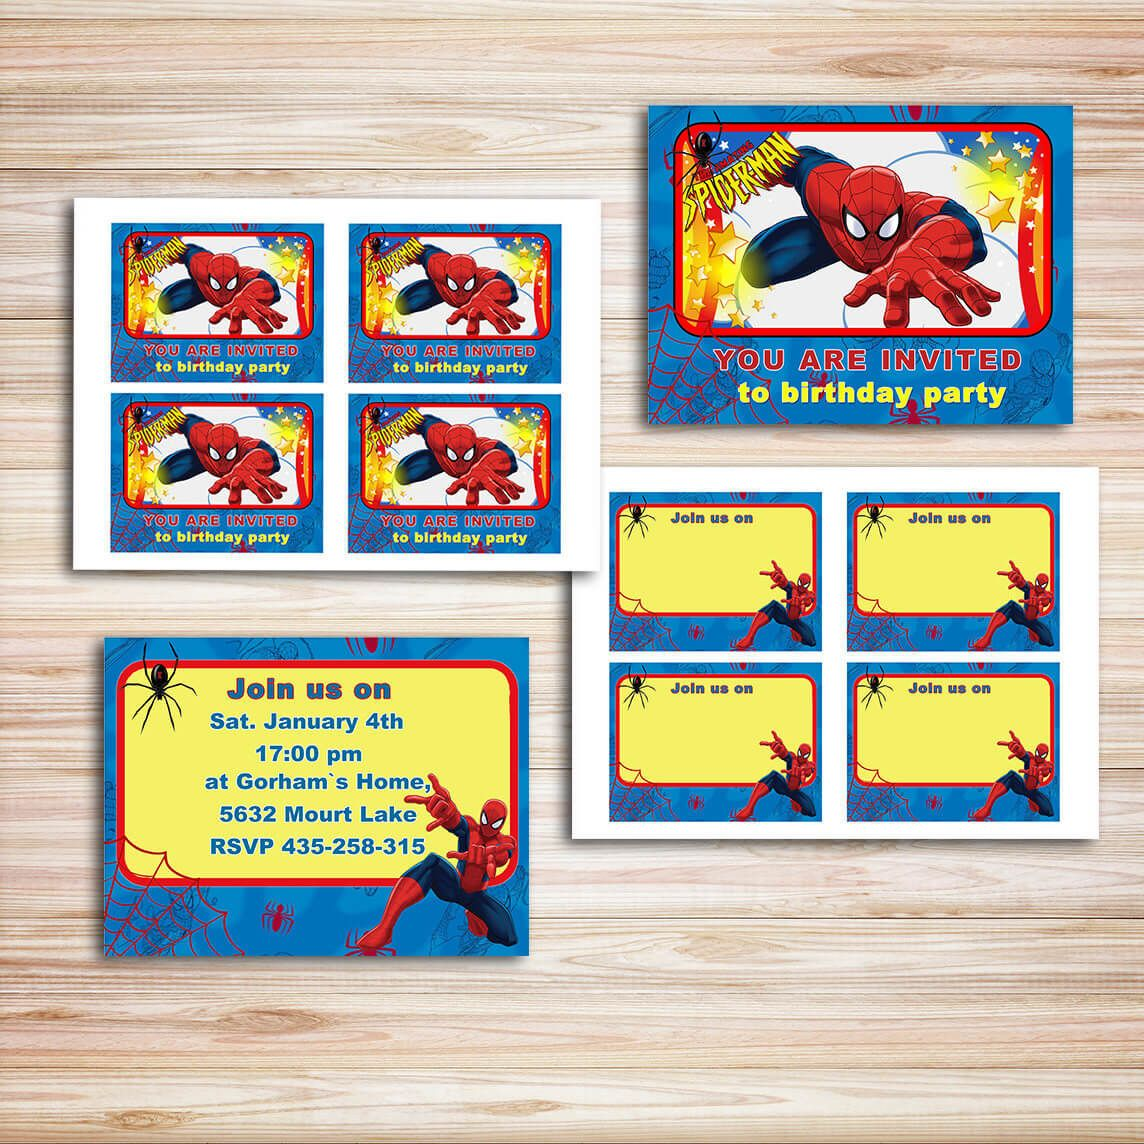 Spiderman Party DIY Invitations is a great way to impress guests and